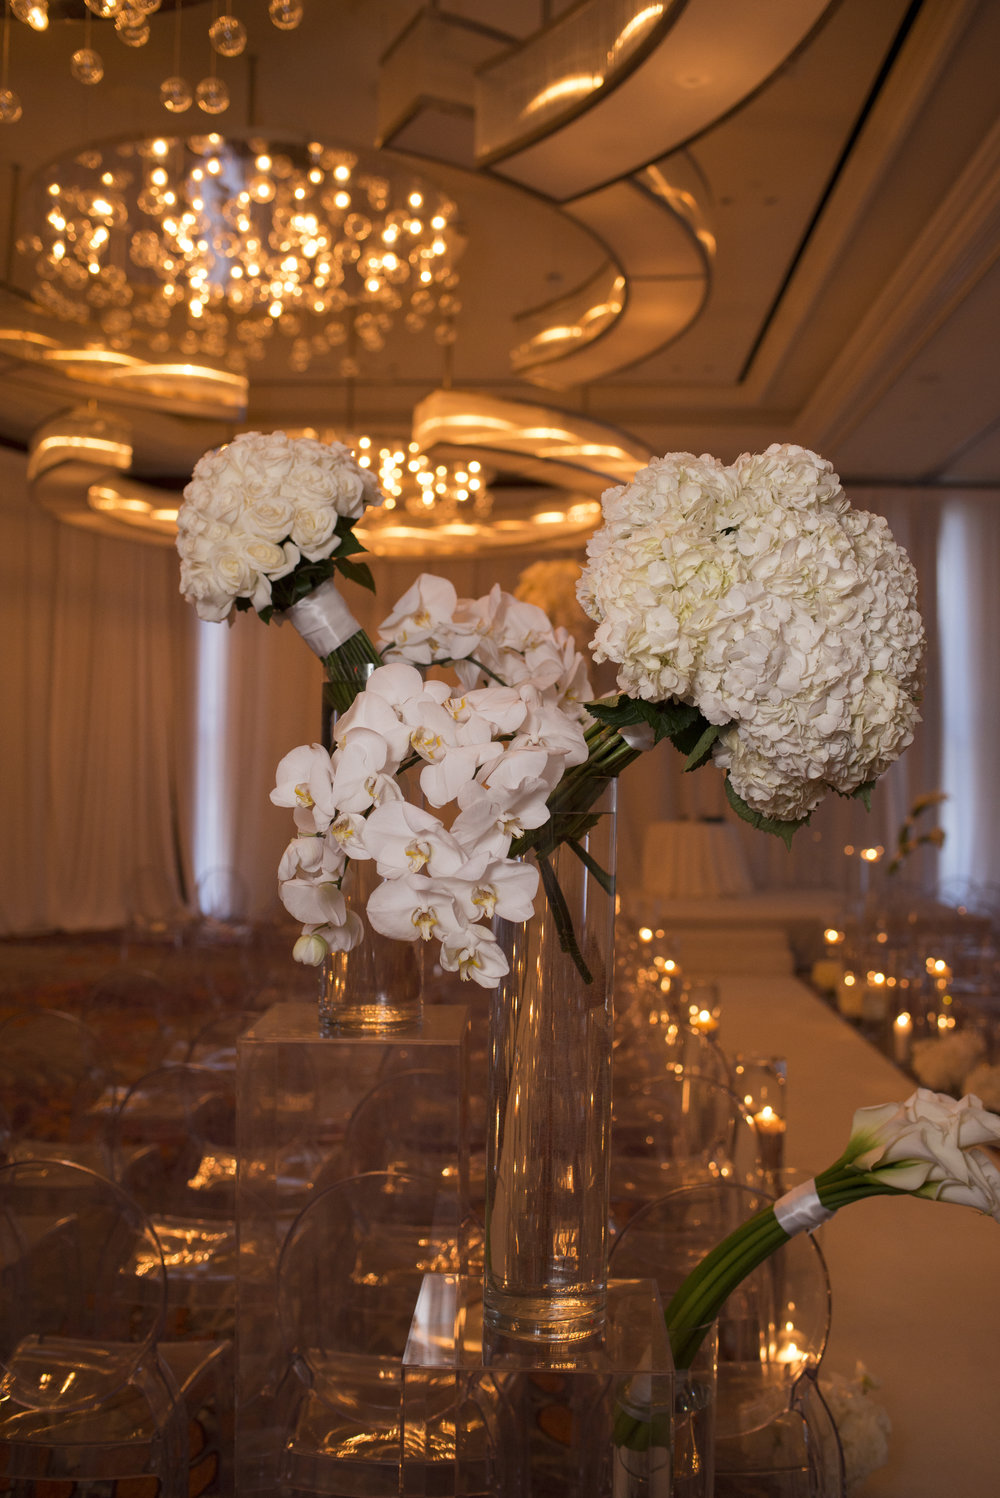 White and ivory flowers in acrylic and glass vases.  WEDDING PLANNING & EVENT DESIGN •  Andrea Eppolito Events , PHOTOGRAPHY •  AltF Photography ,  FLORAL AND DECOR DESIGN & PRODUCTION • Destinations by Design , CATERING •  Mandarin Oriental Las Vegas , COCKTAILS •  The Grand Bevy , WEDDING GOWN •  Galia Lahav ,  SHOES •  Jimmy Choo